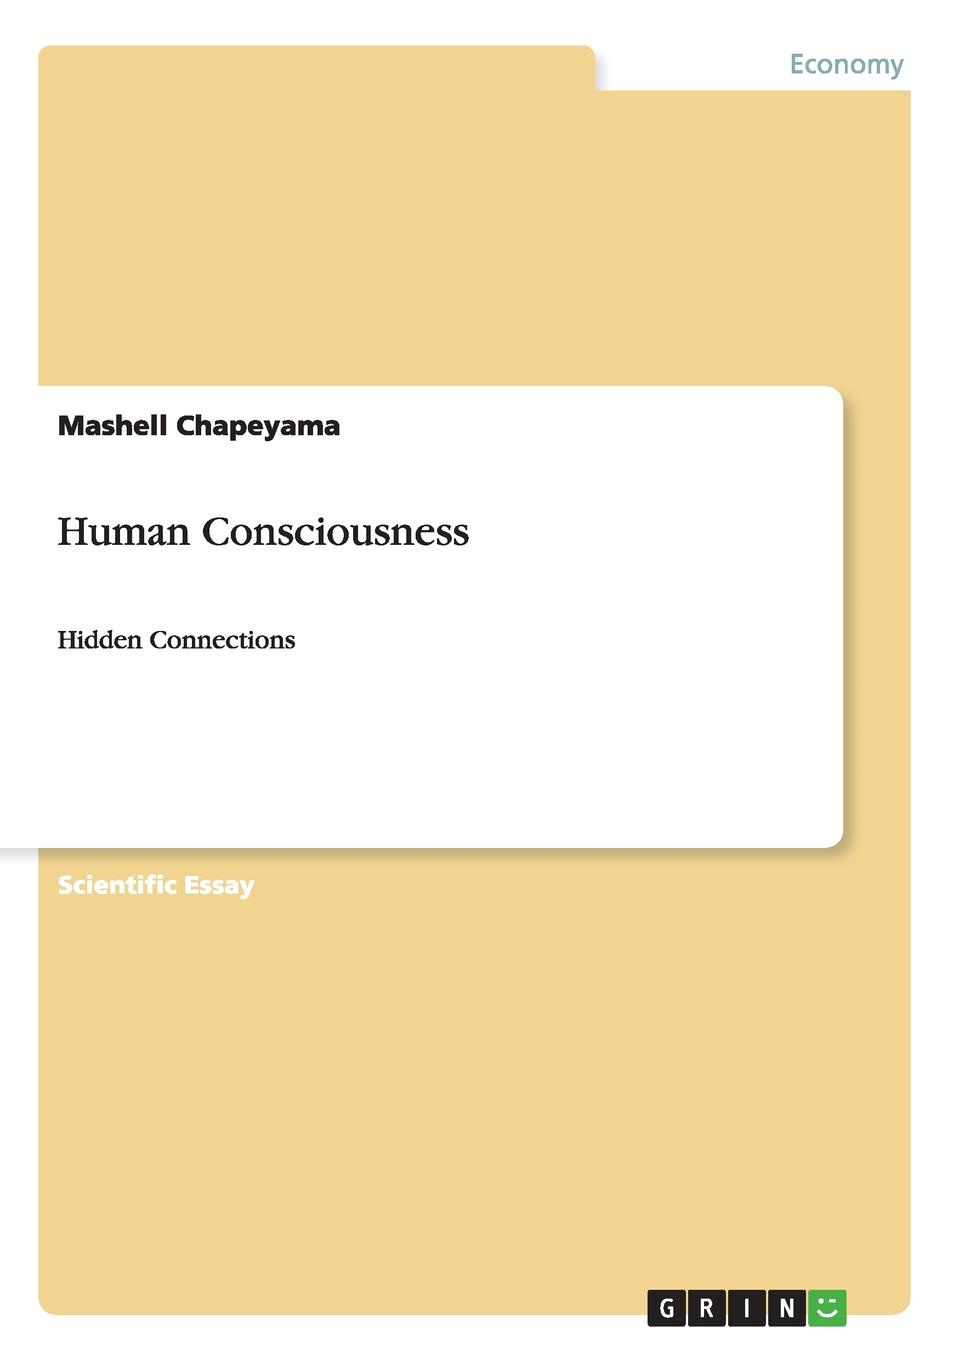 Human Consciousness Scientific Essay from the year 2010 in the subject Business economics...